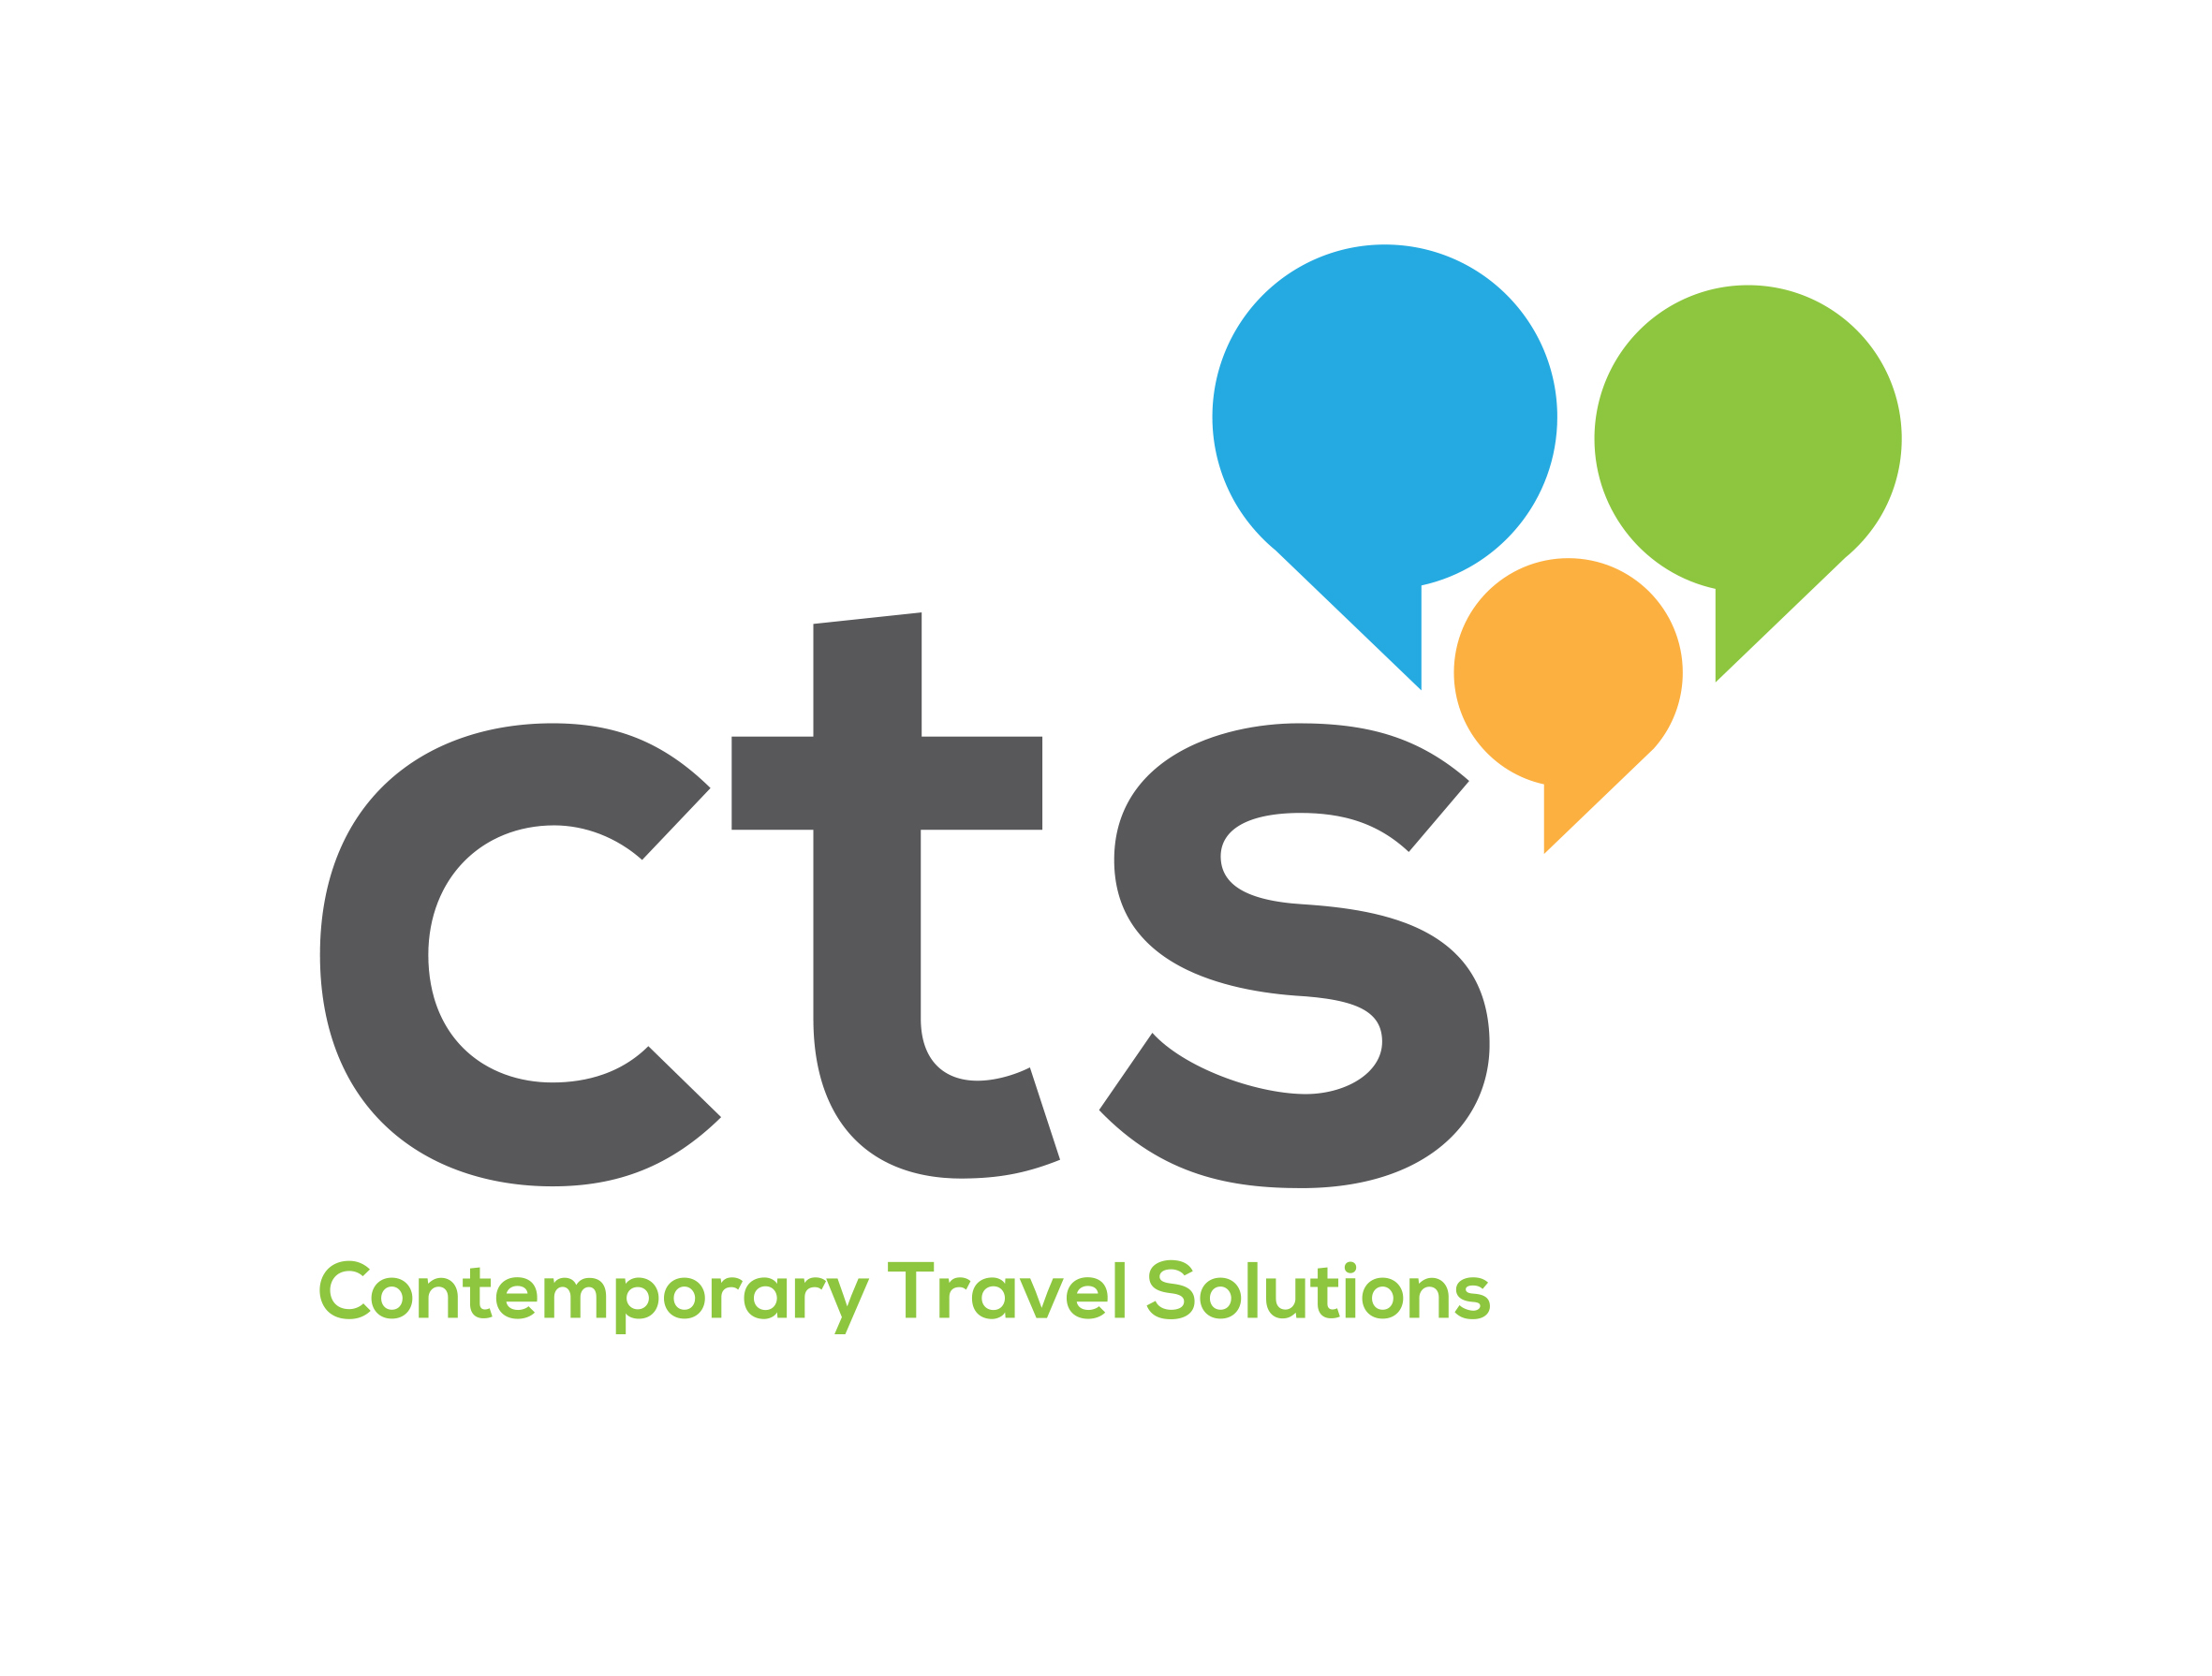 ttg media travel industry travel agent and tourism news events travel advisors home based